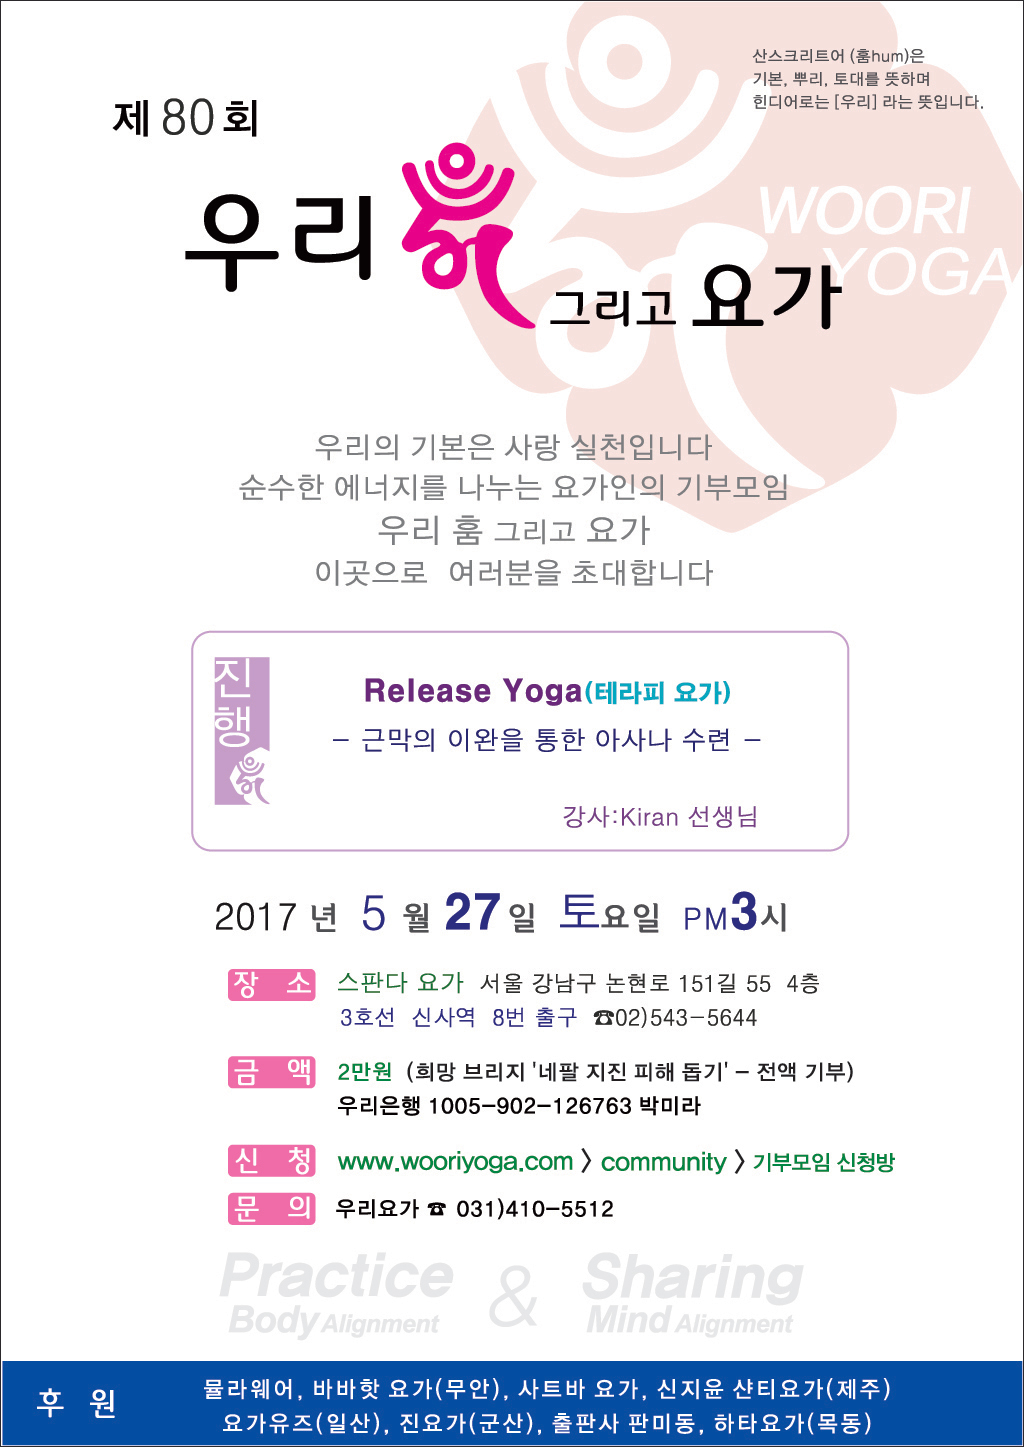 WooriHum_n_Yoga_80th_001.jpg